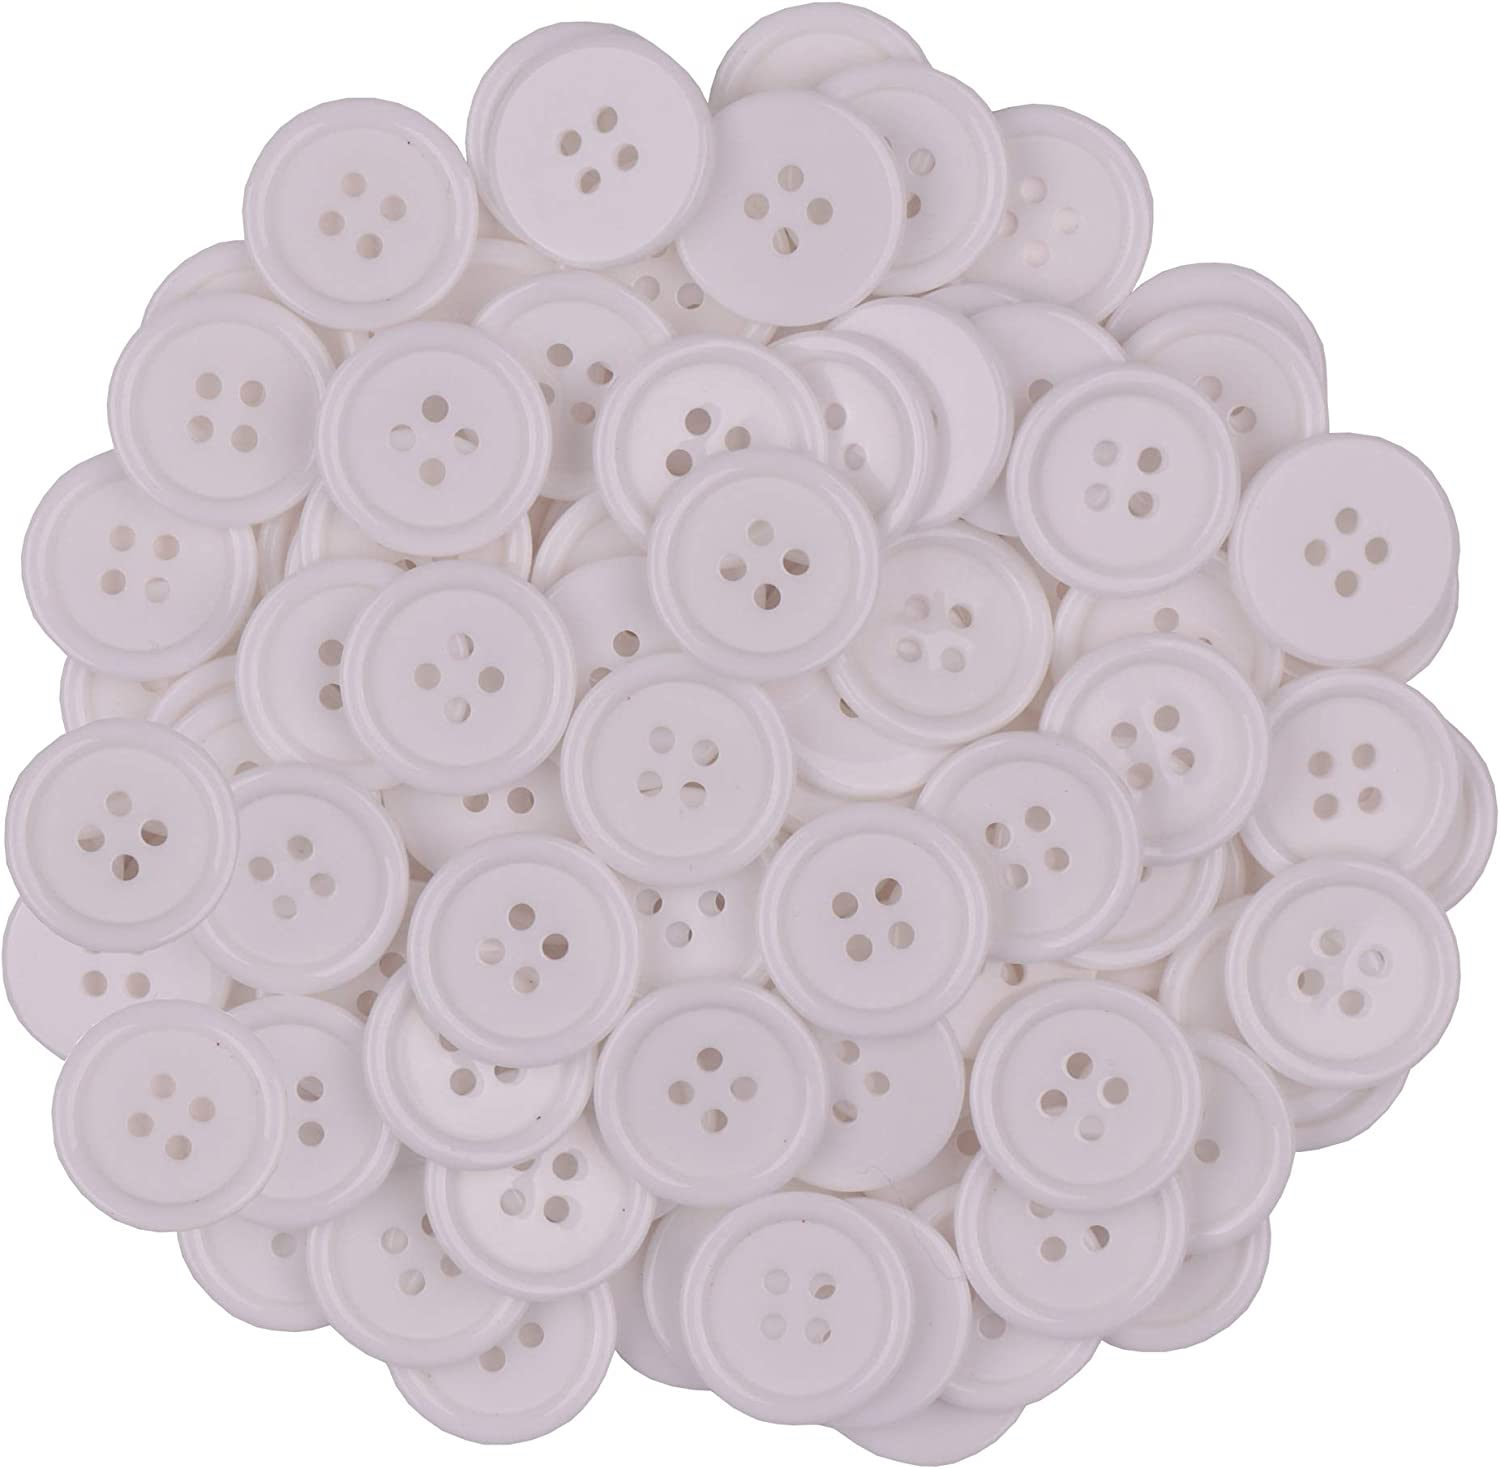 Amethyst YAKA100Pcs 4//5inch Sewing Resin Buttons Round Shape 4 Holes Craft Buttons for Sewing Scrapbooking and DIY Craft 20mm